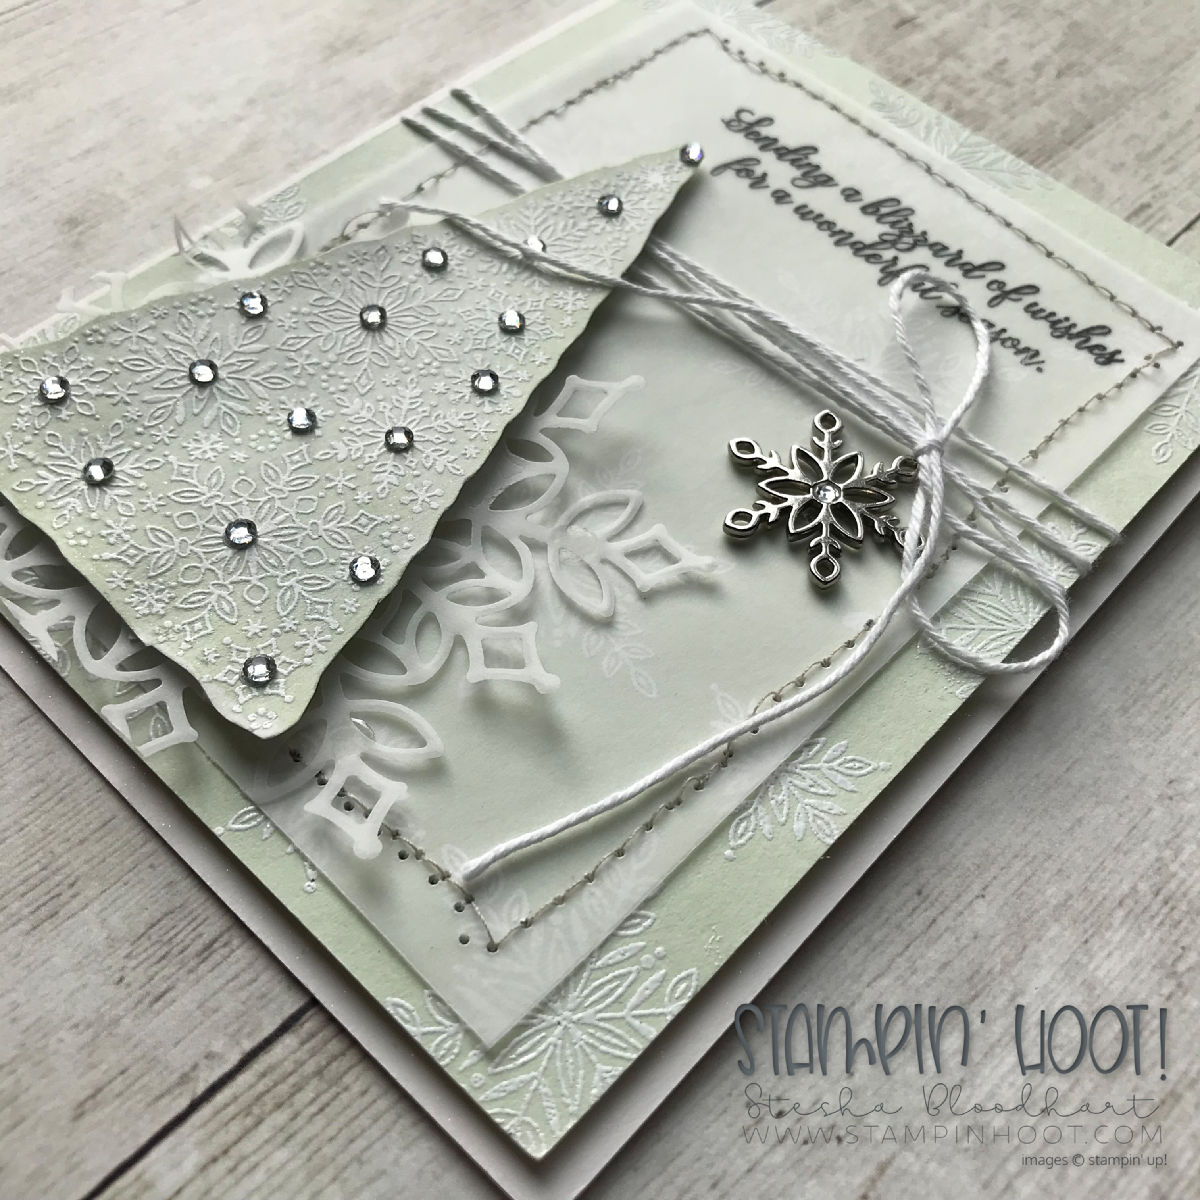 Snowflake Showcase Limited Product Release Card Created by Stesha Bloodhart, Stampin' Hoot! #stampinhoot #steshabloodhart